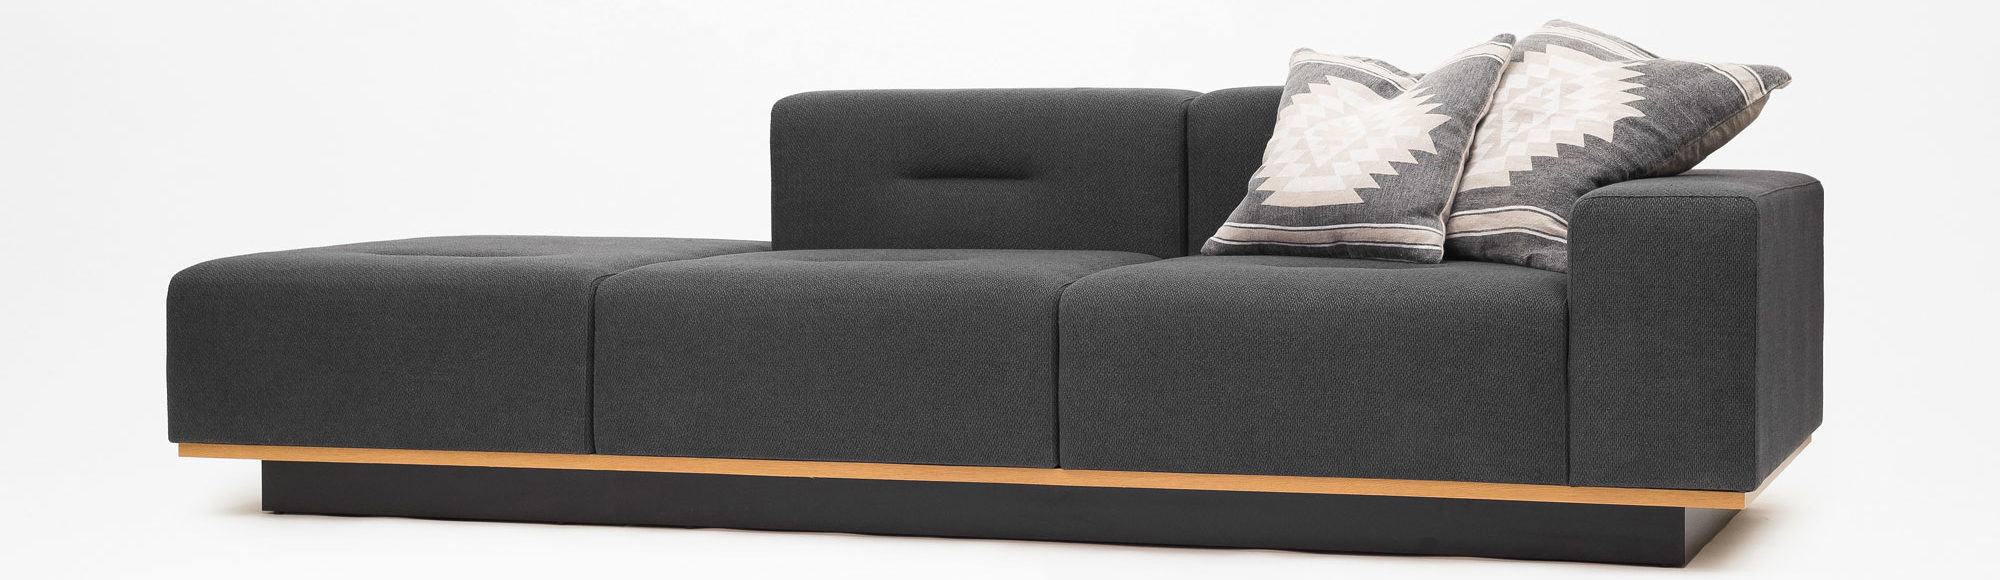 Transforms – Mobilier Multifunctional